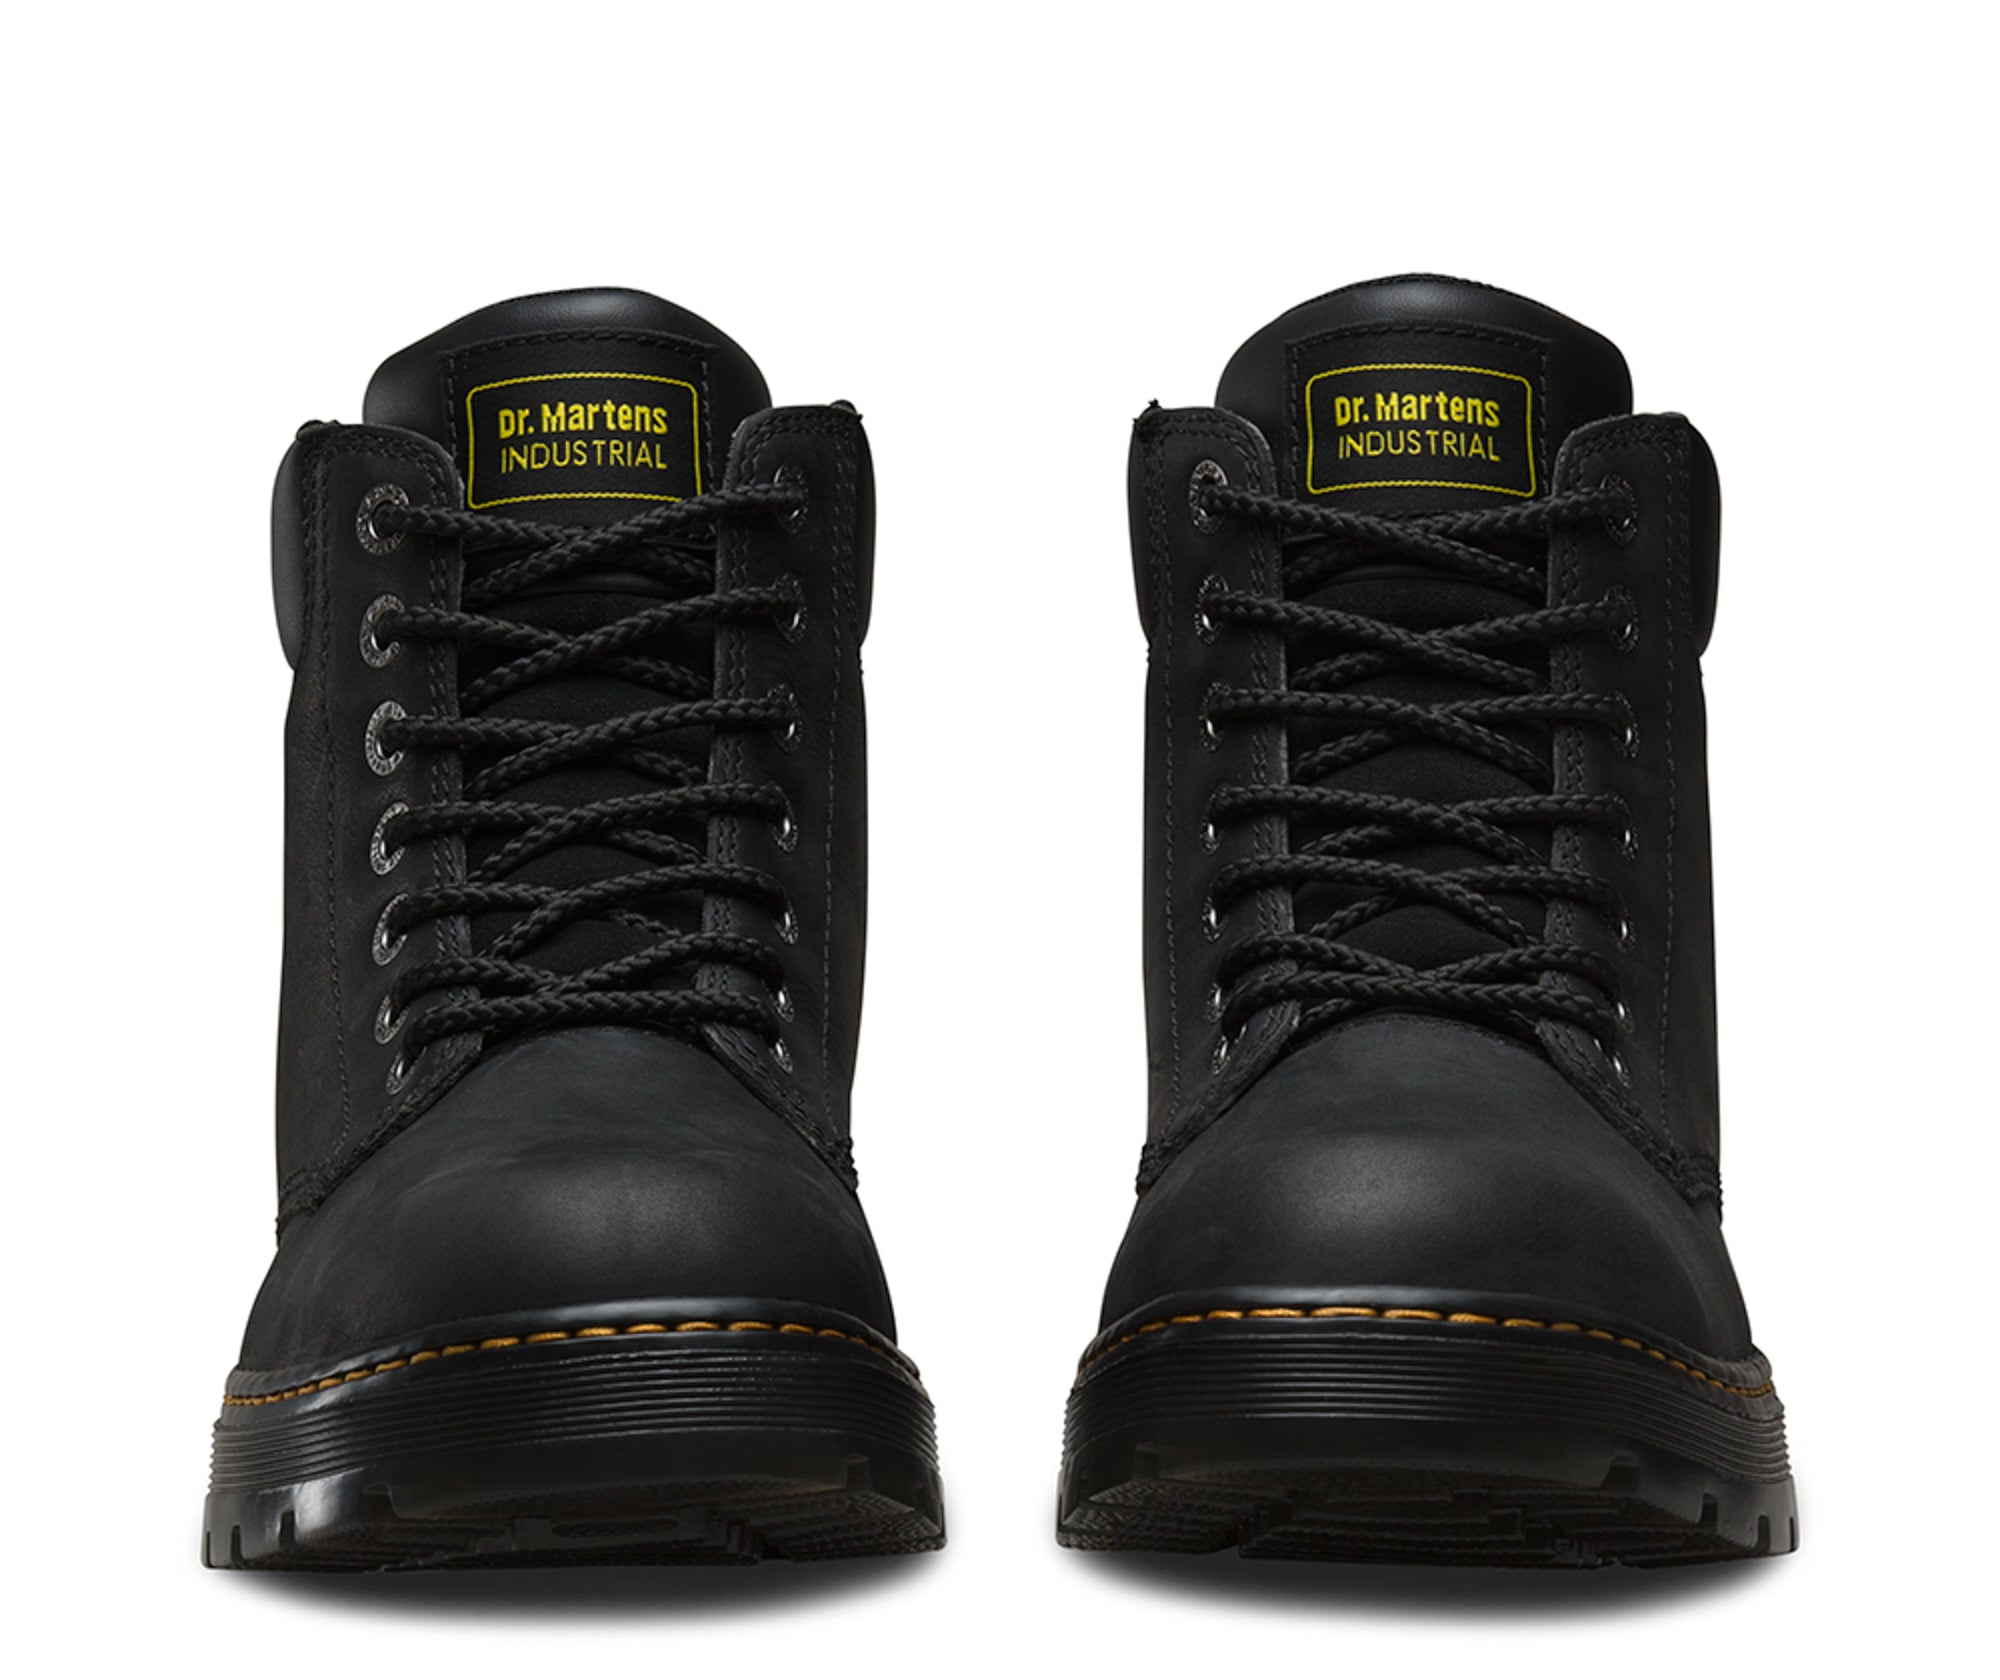 56d0dcf6687 Dr Martens Black Unisex Winch Ns Wyoming Leather Work Boots ...